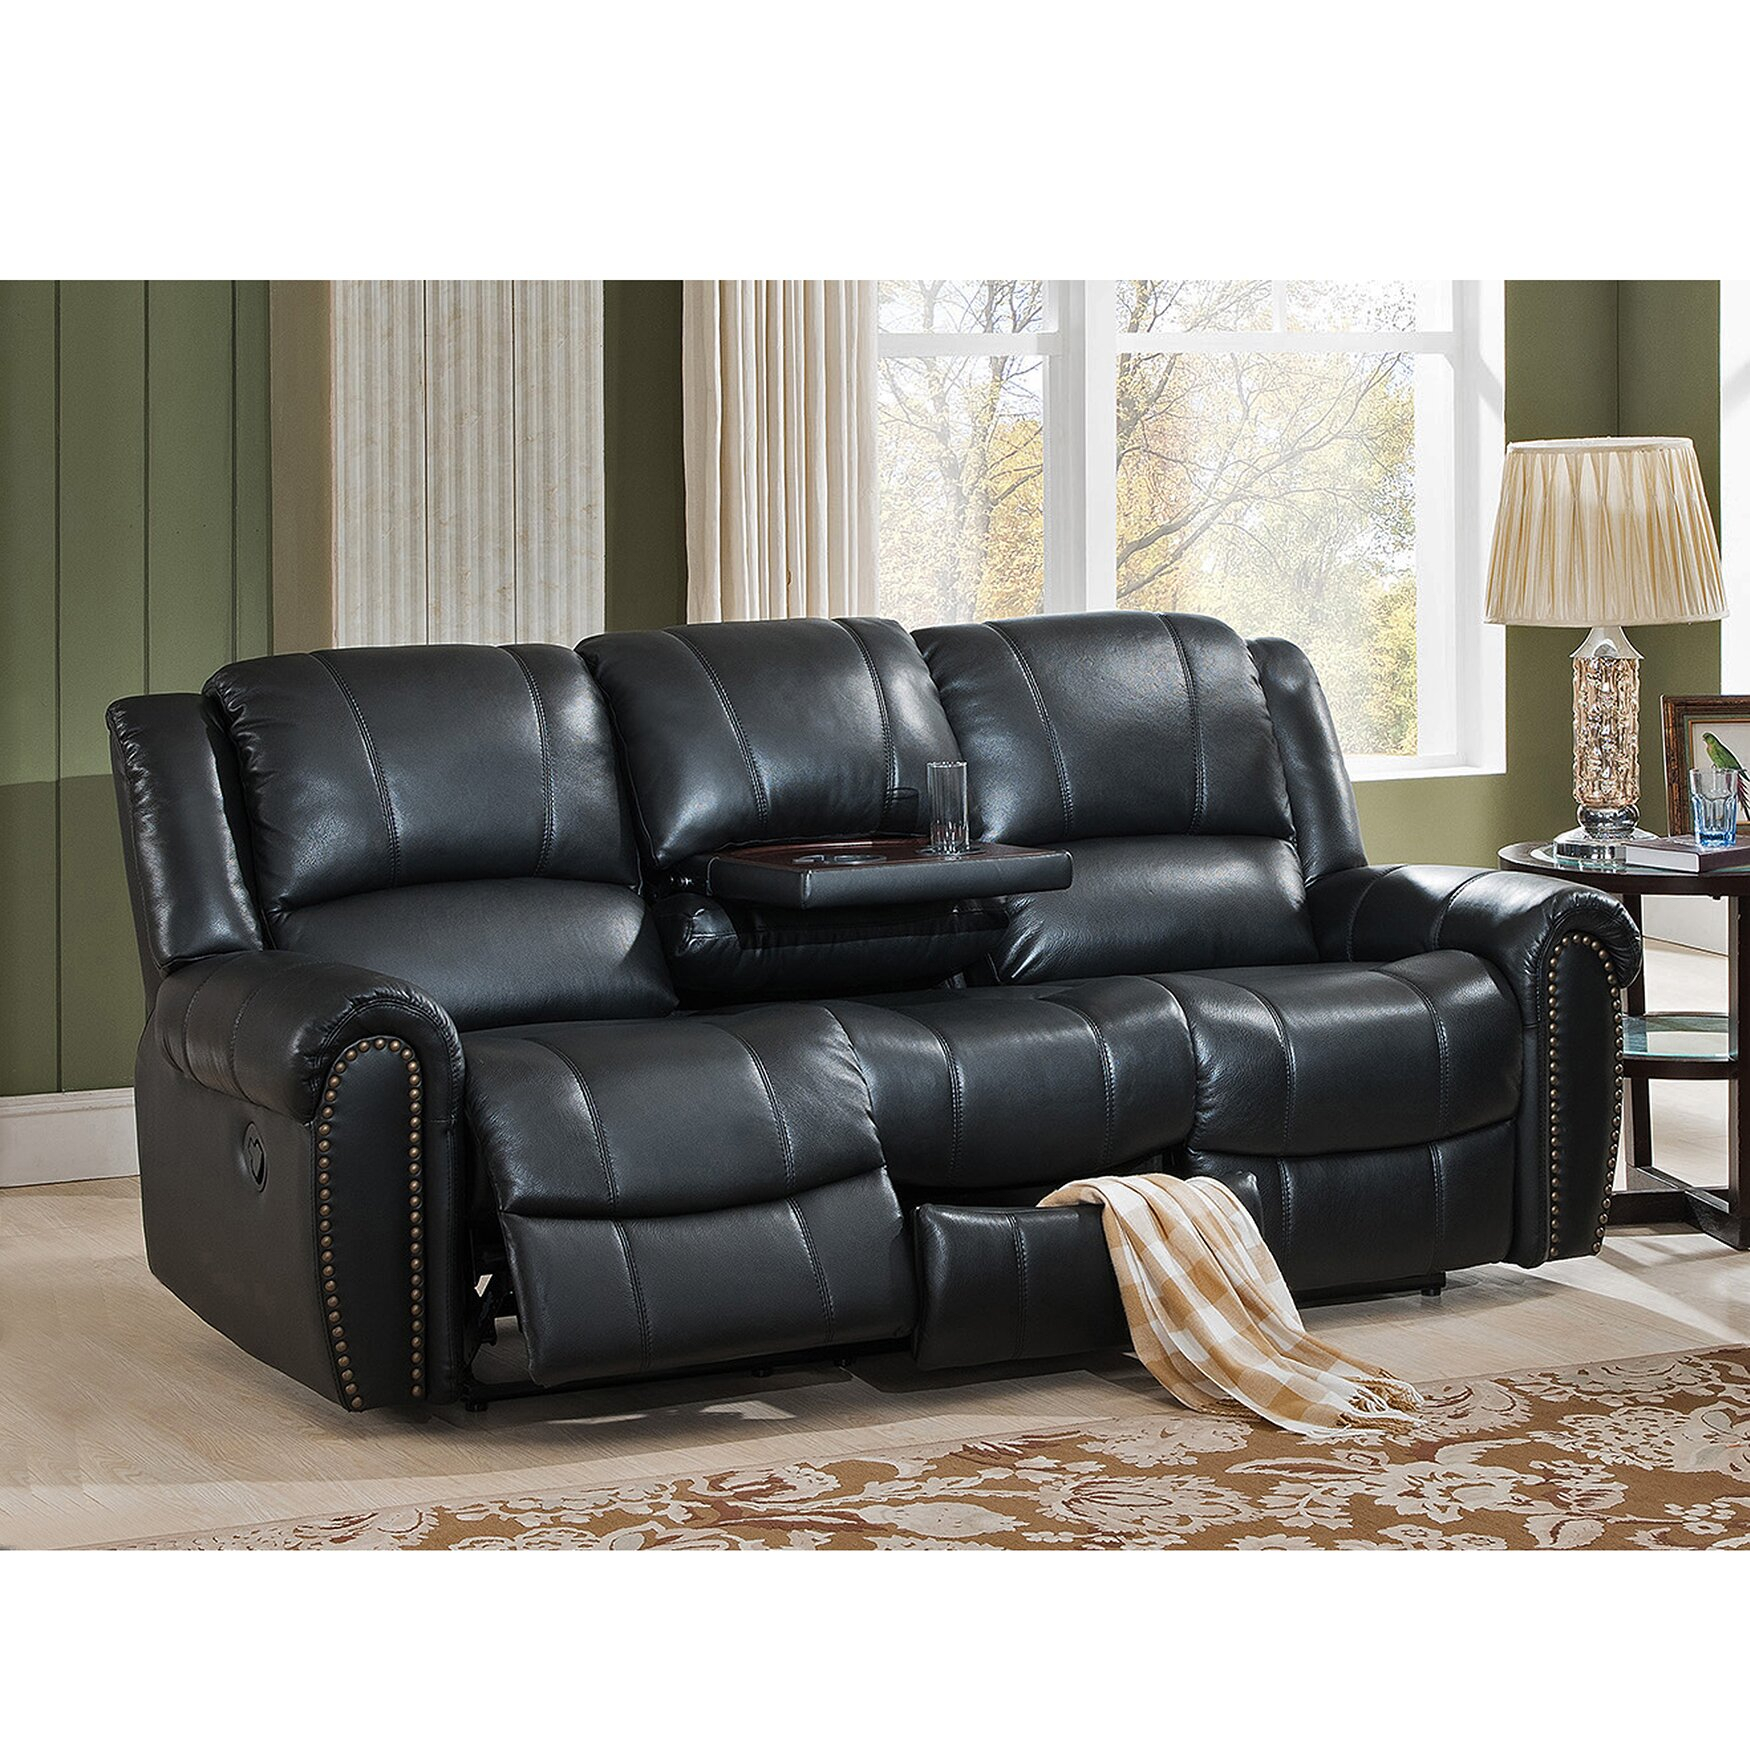 Amax Houston Leather Reclining Sofa & Reviews | Wayfair (View 13 of 15)